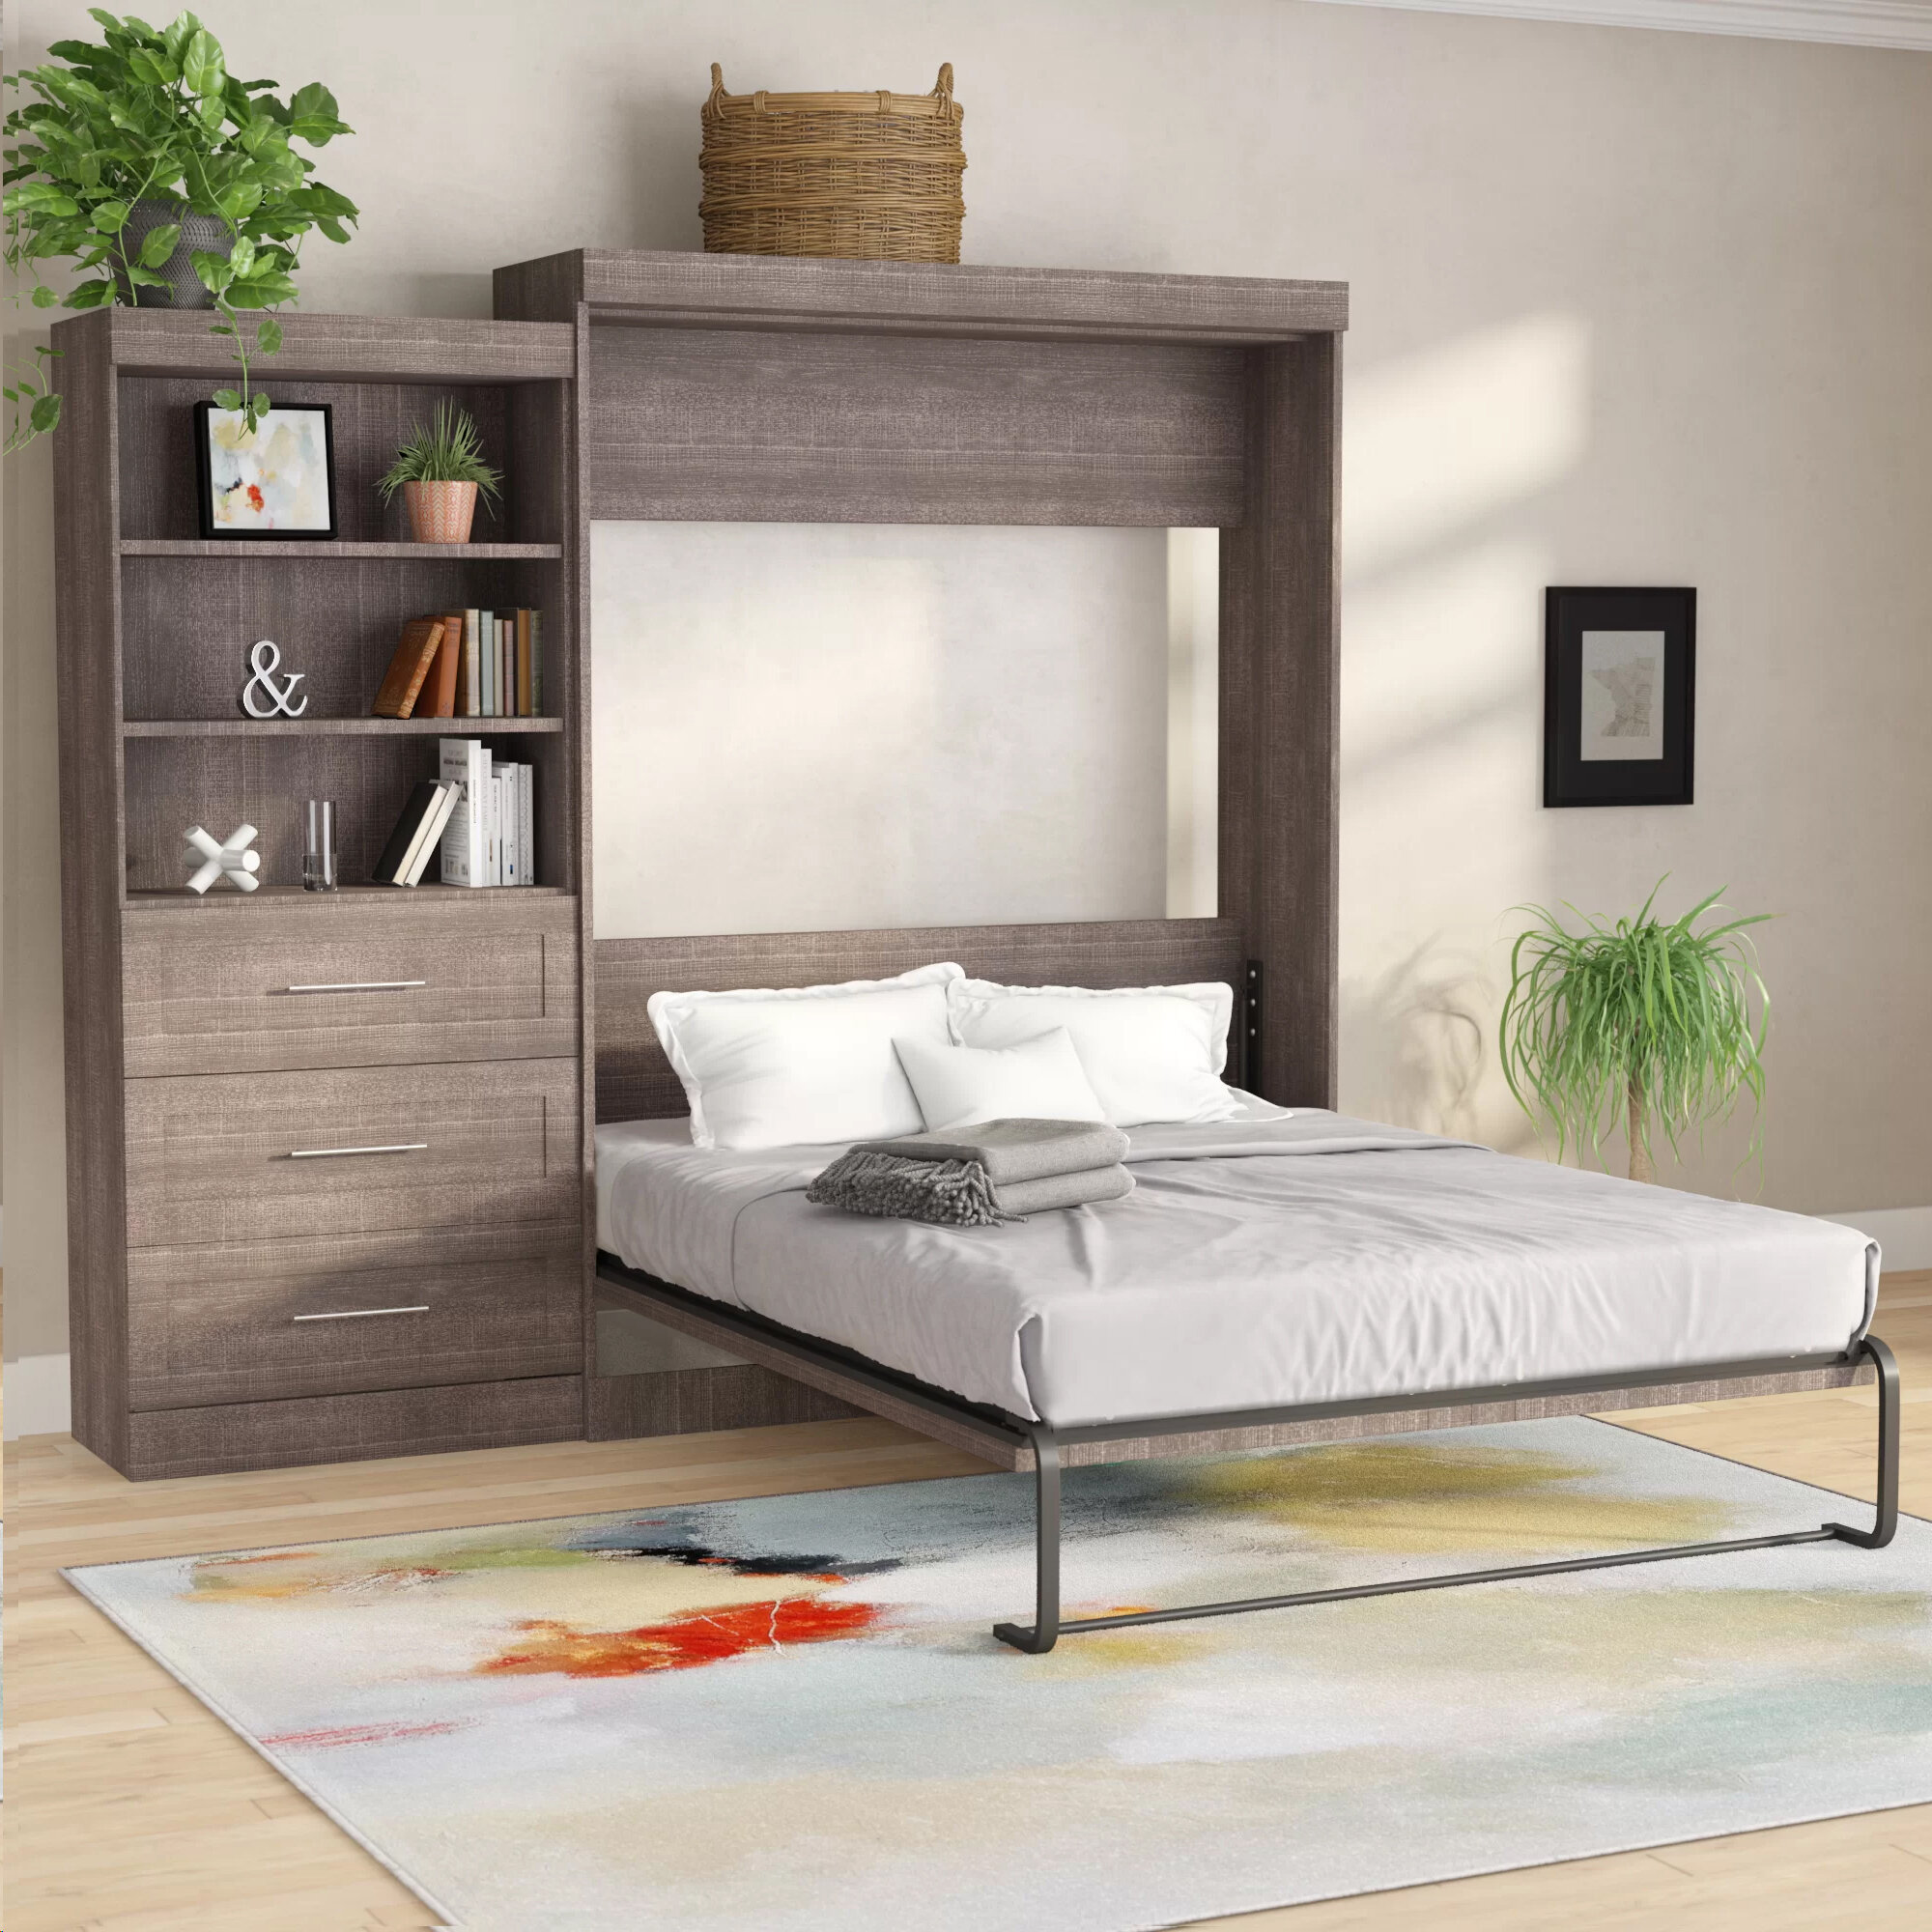 Folding Bed With Shelves Marcuscable Com